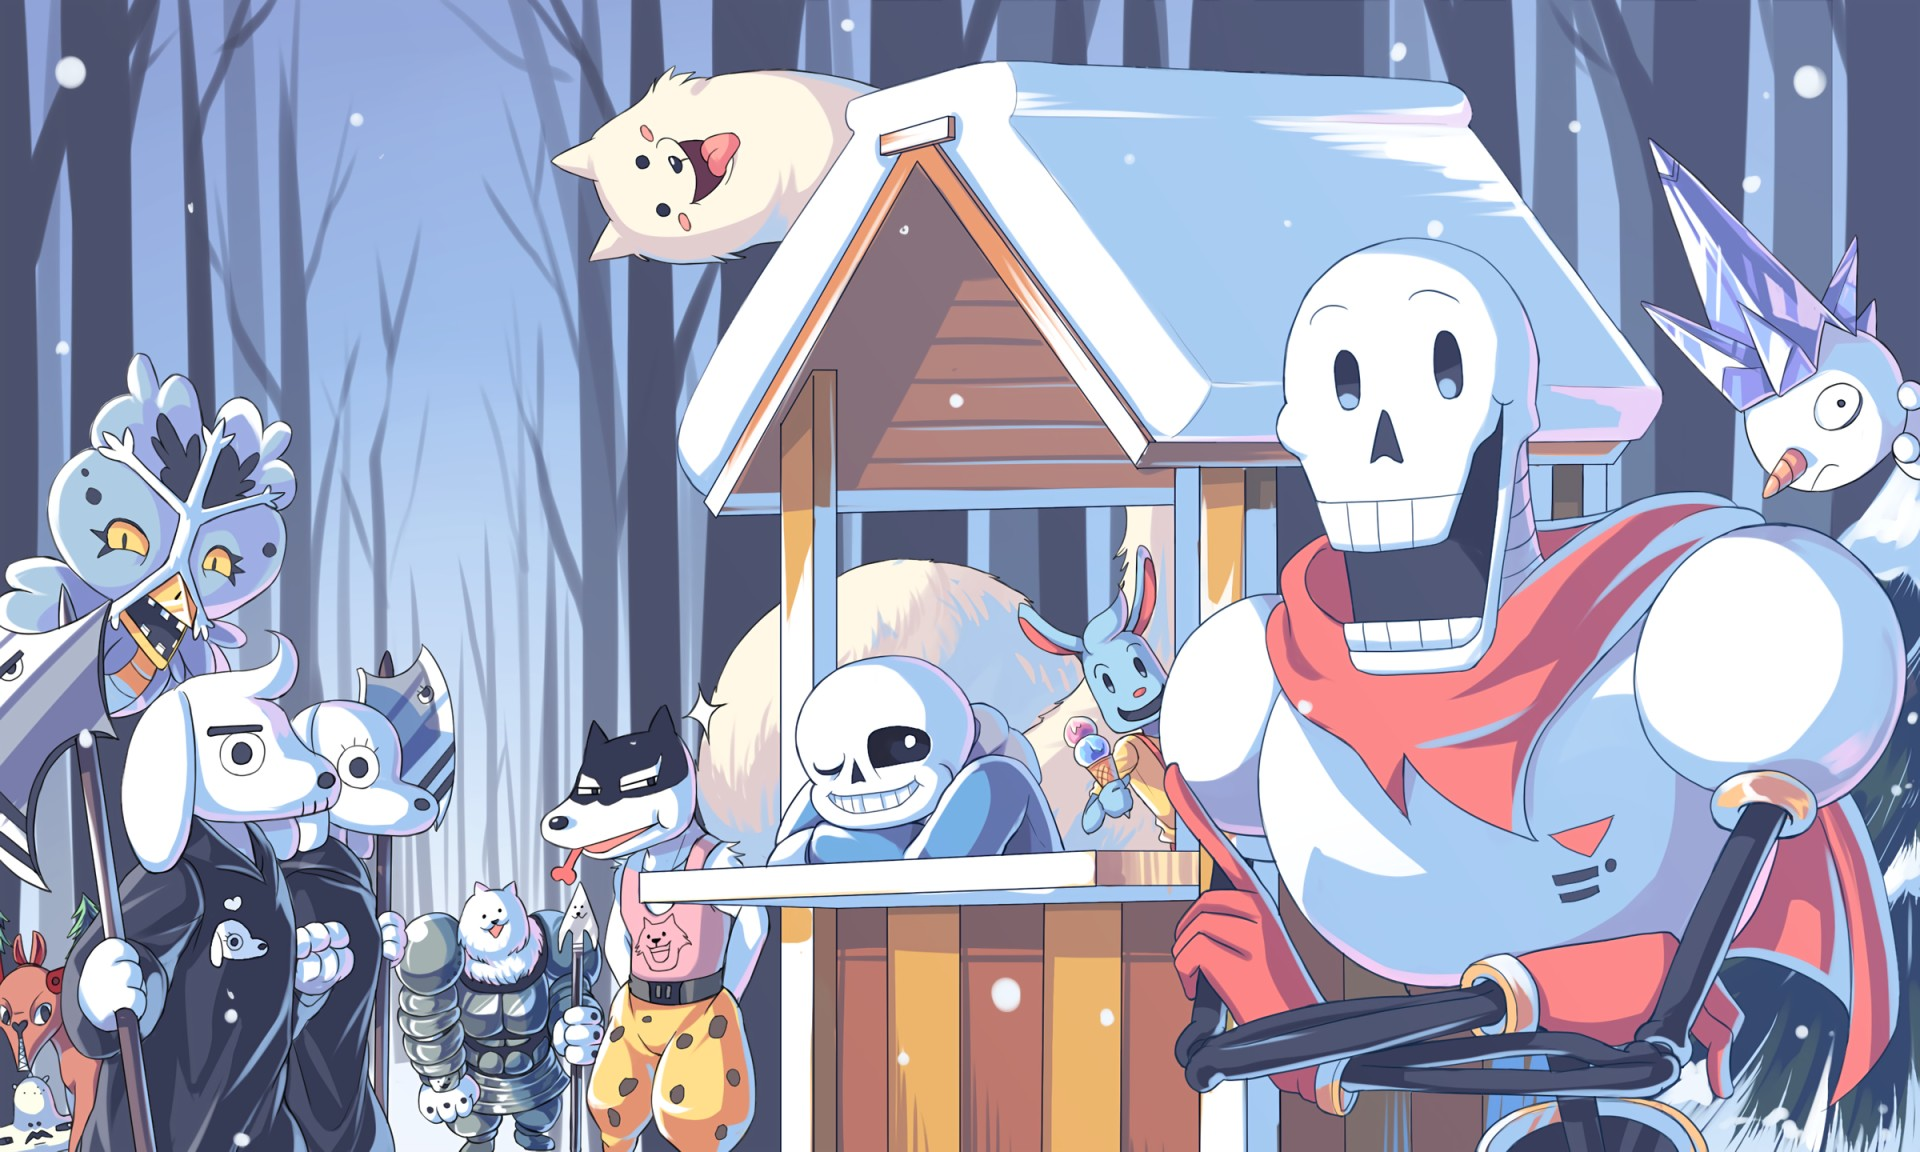 Sans Undertale Wallpaper Check Out Our Awesome